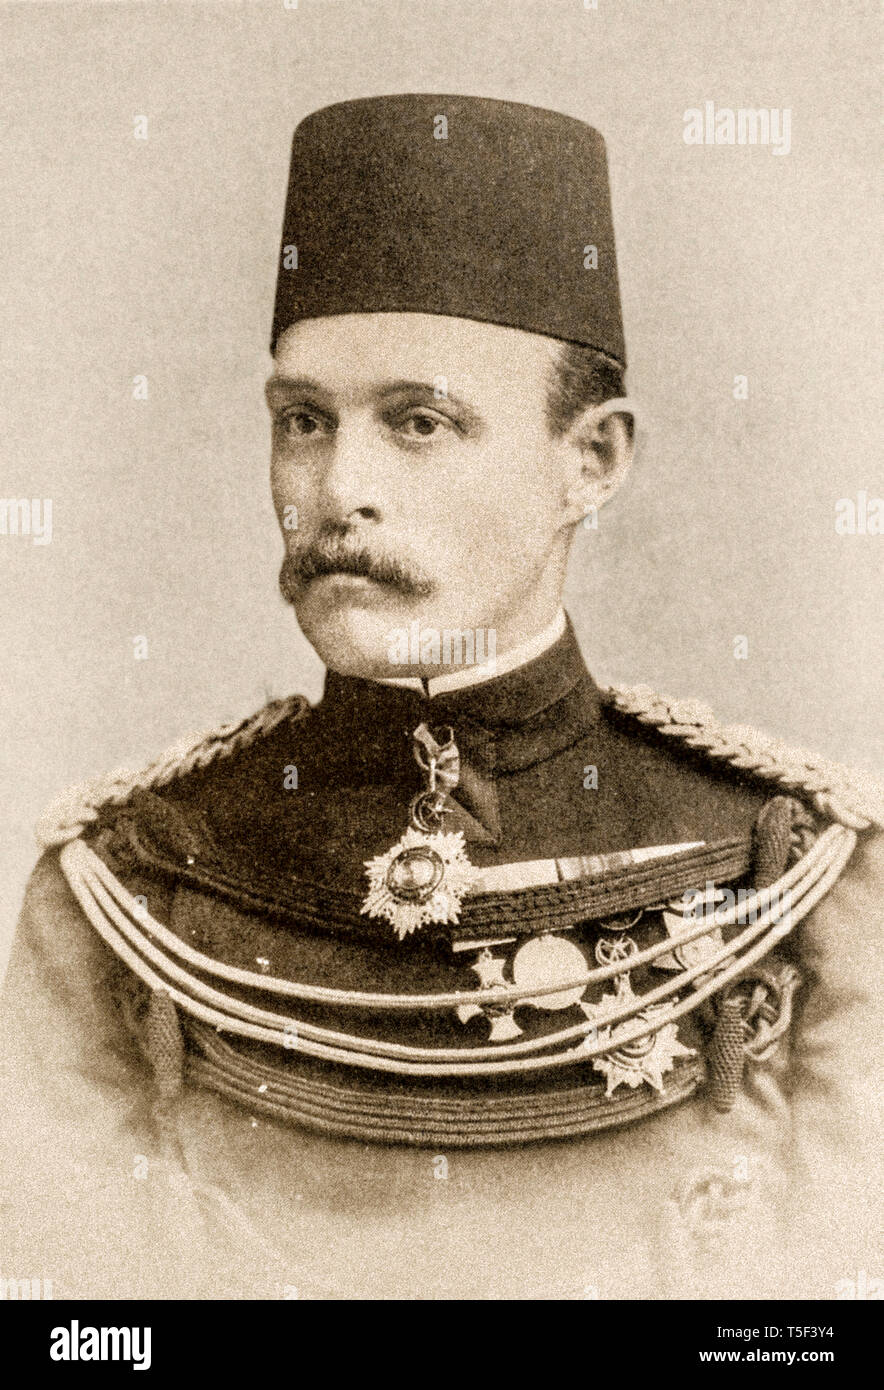 Mahdist war - Mayor General Sir Archibald Hunter 'second in command' of the Egyptian Army 1896-1898 - Stock Image